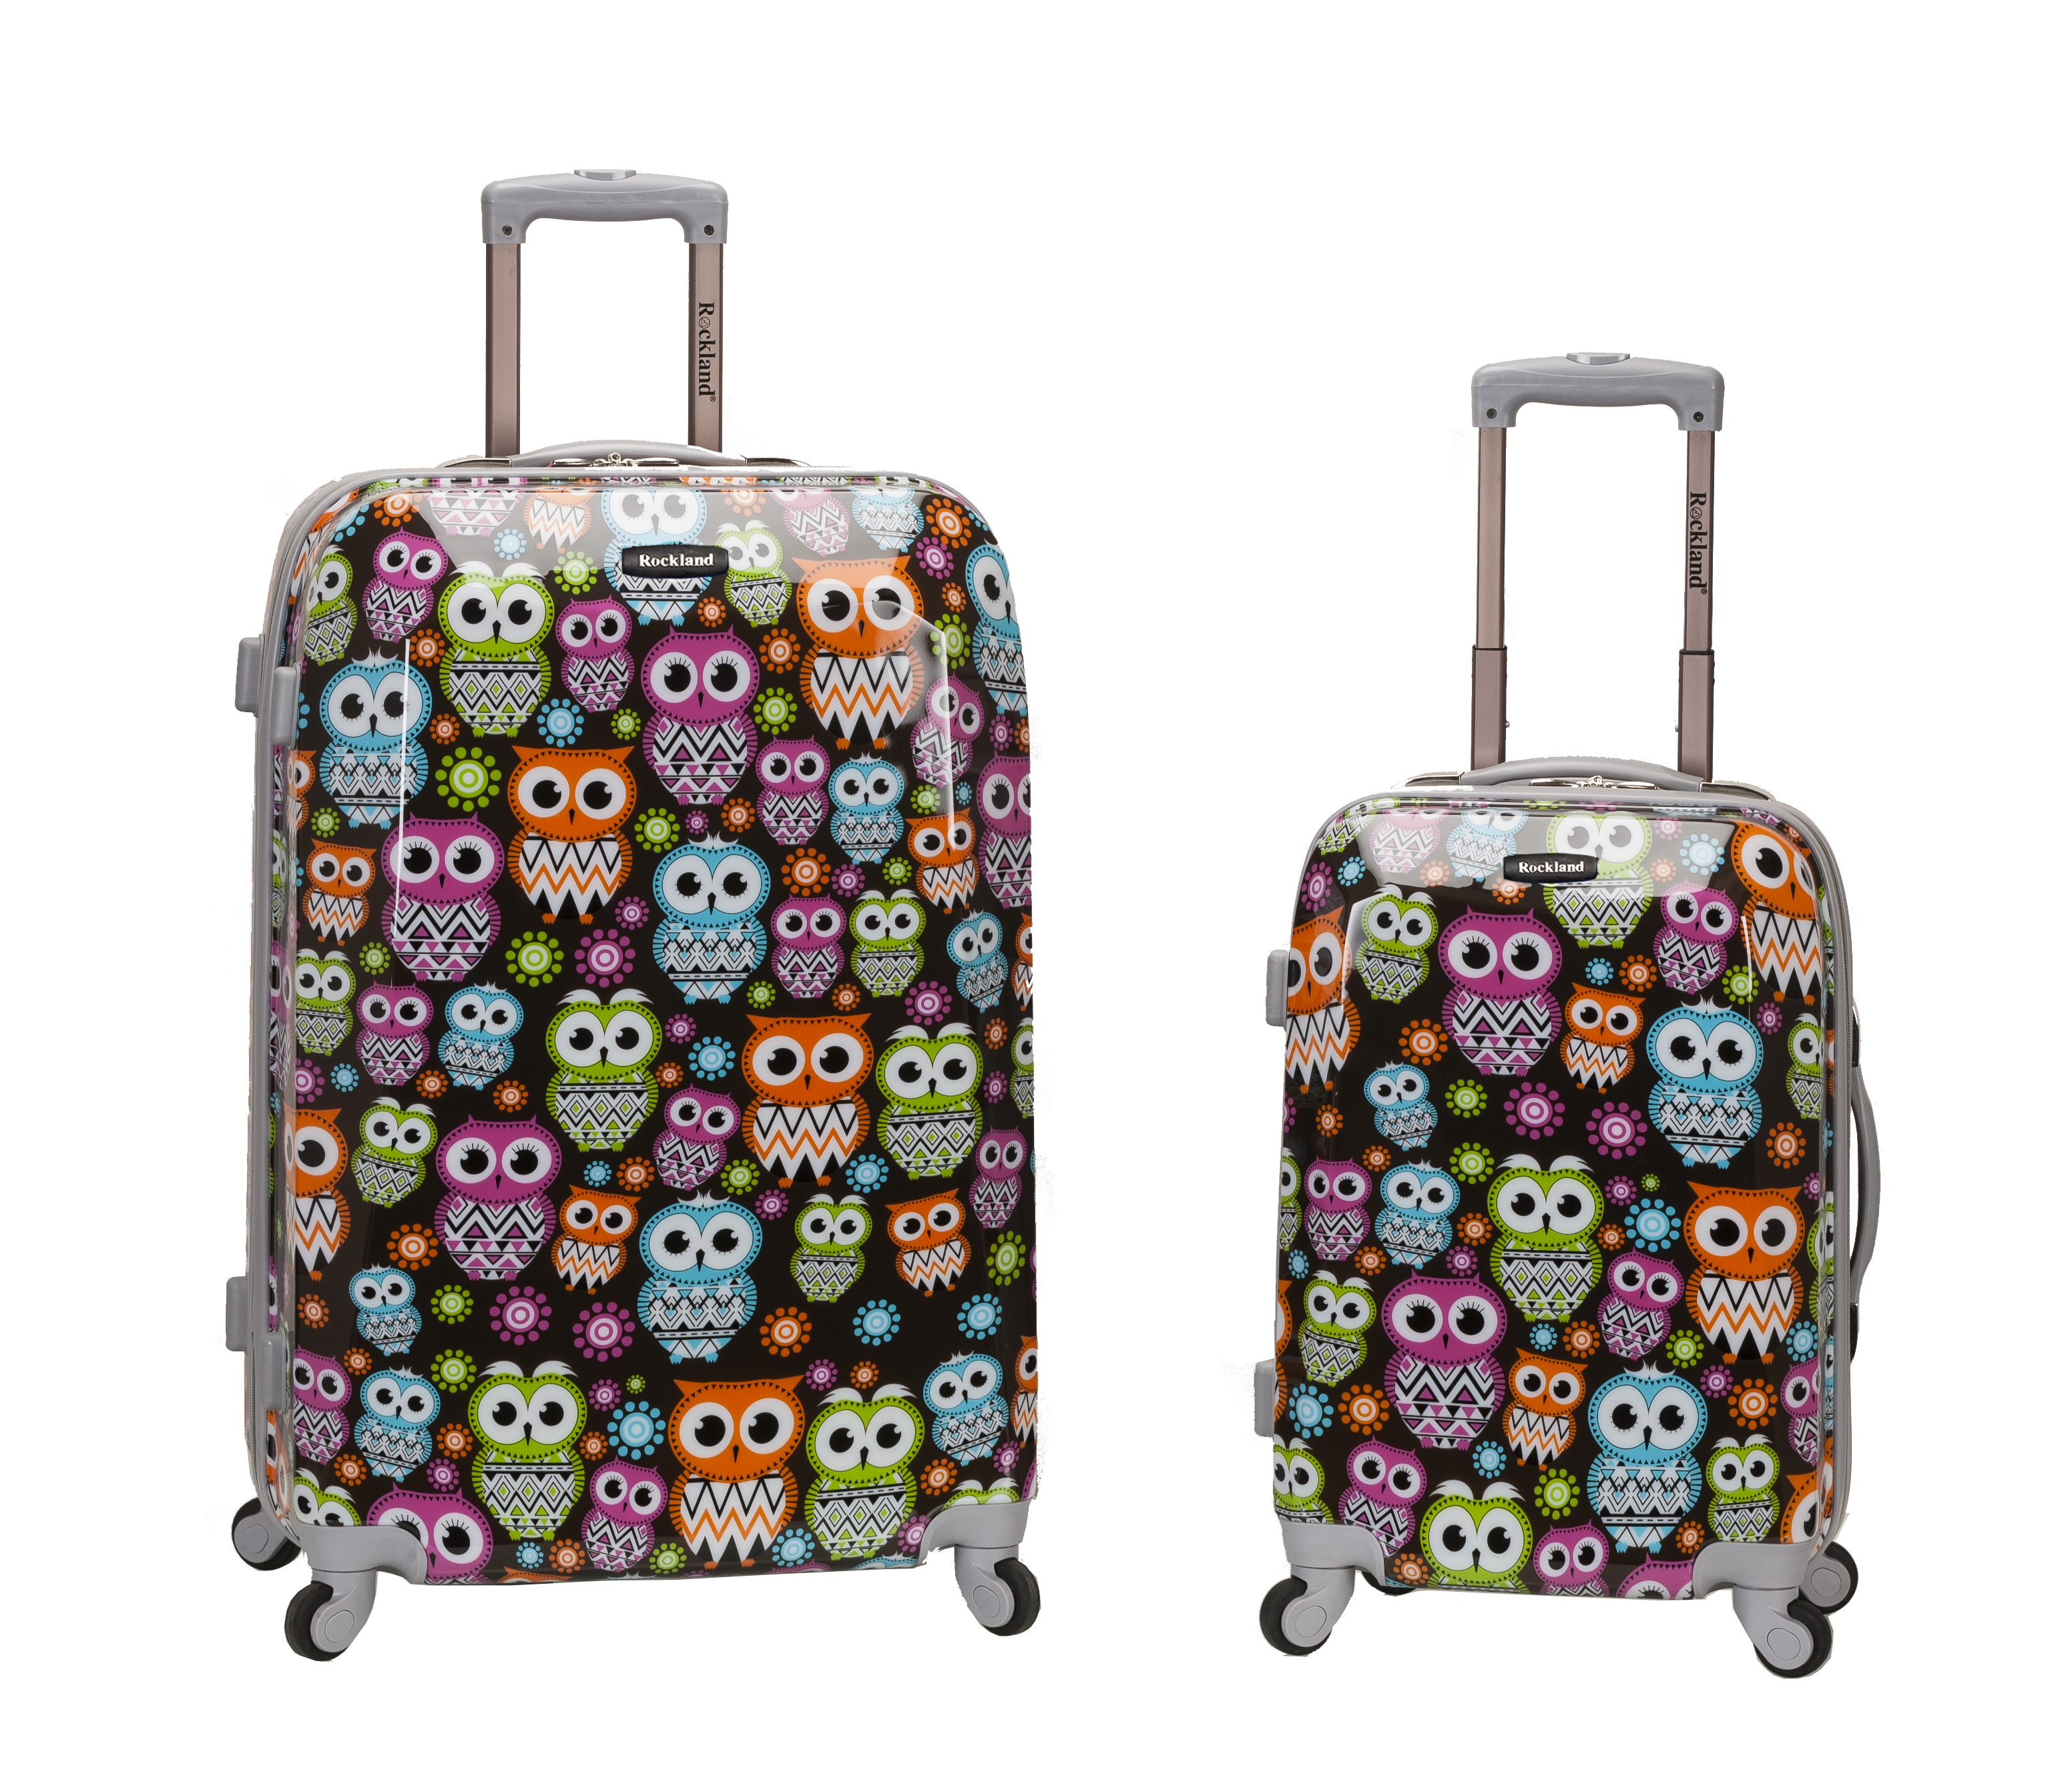 Rockland 2 Pc Hardside Upright Luggage Set Owl